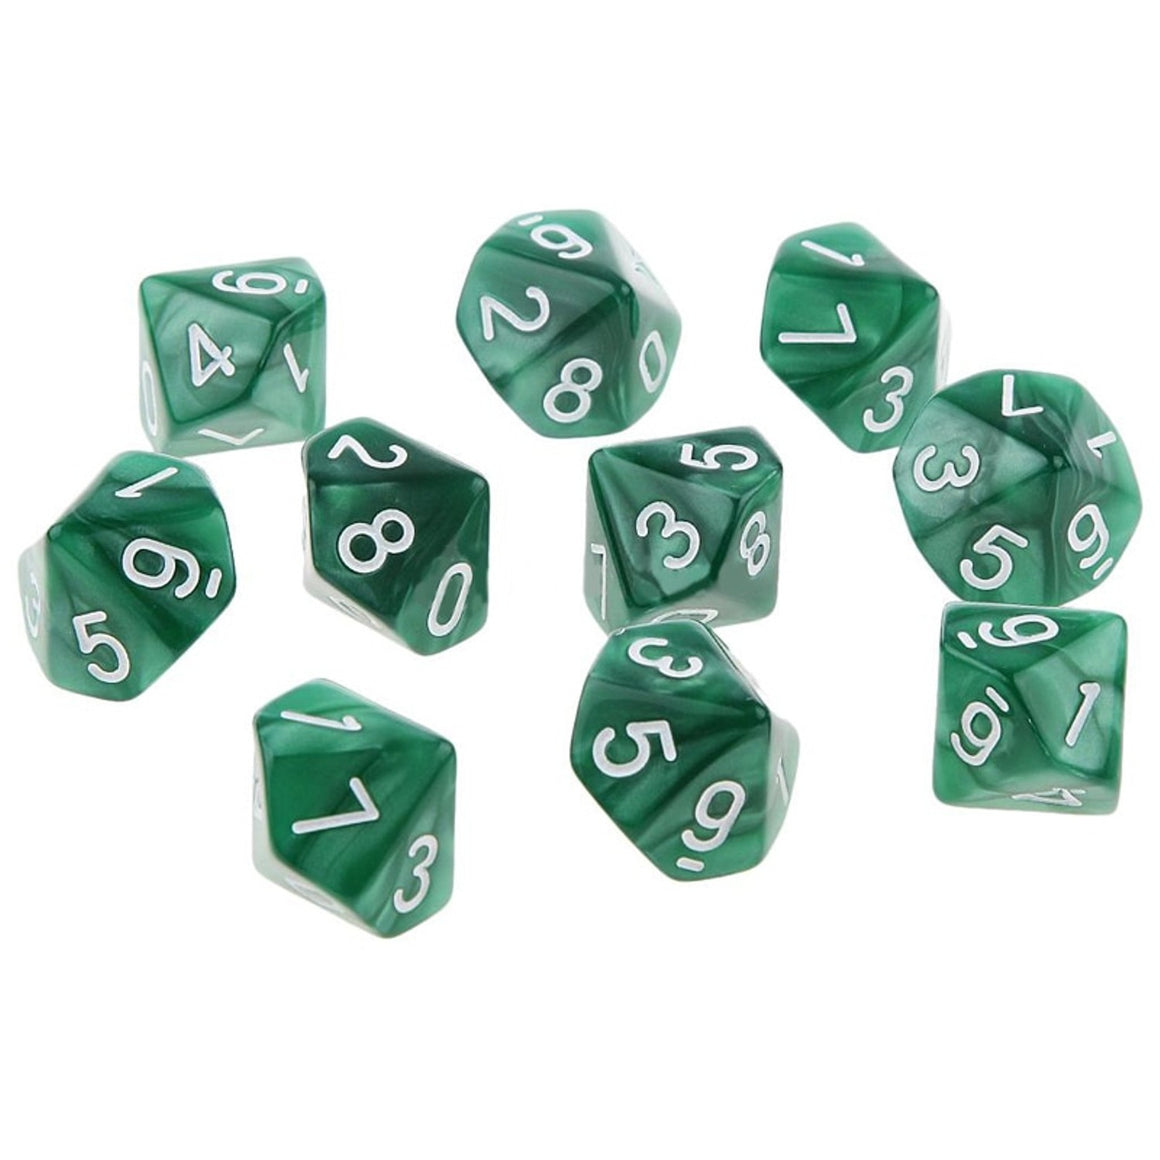 Mayitr Transparent 10Pcs D10 Ten Sided Pearl Gemmed Dices Die (0-9) forRPG For DDG Set of 10 Dice Playing Games